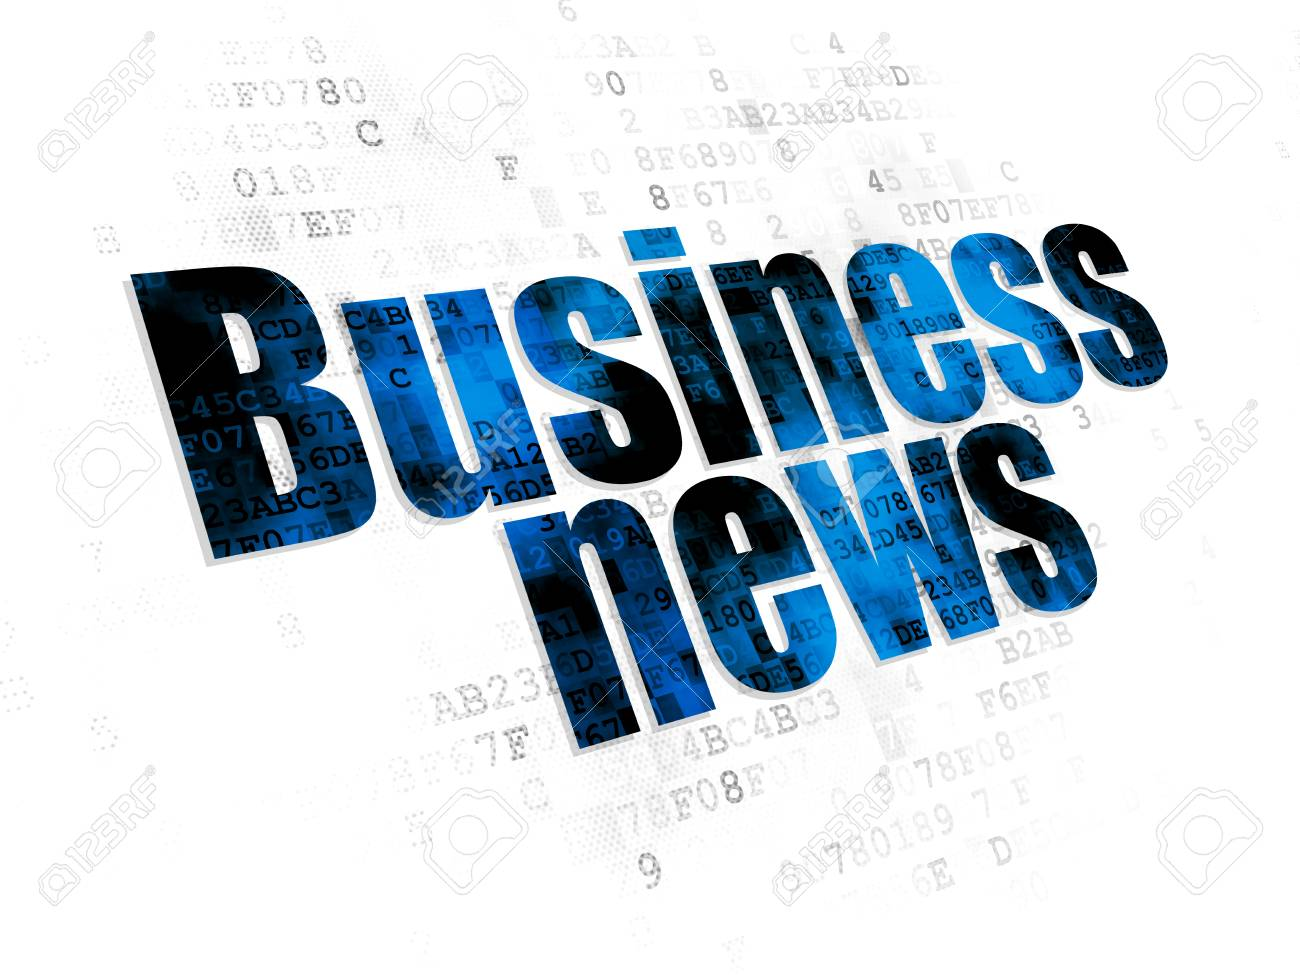 Business News Today, Stock Market News